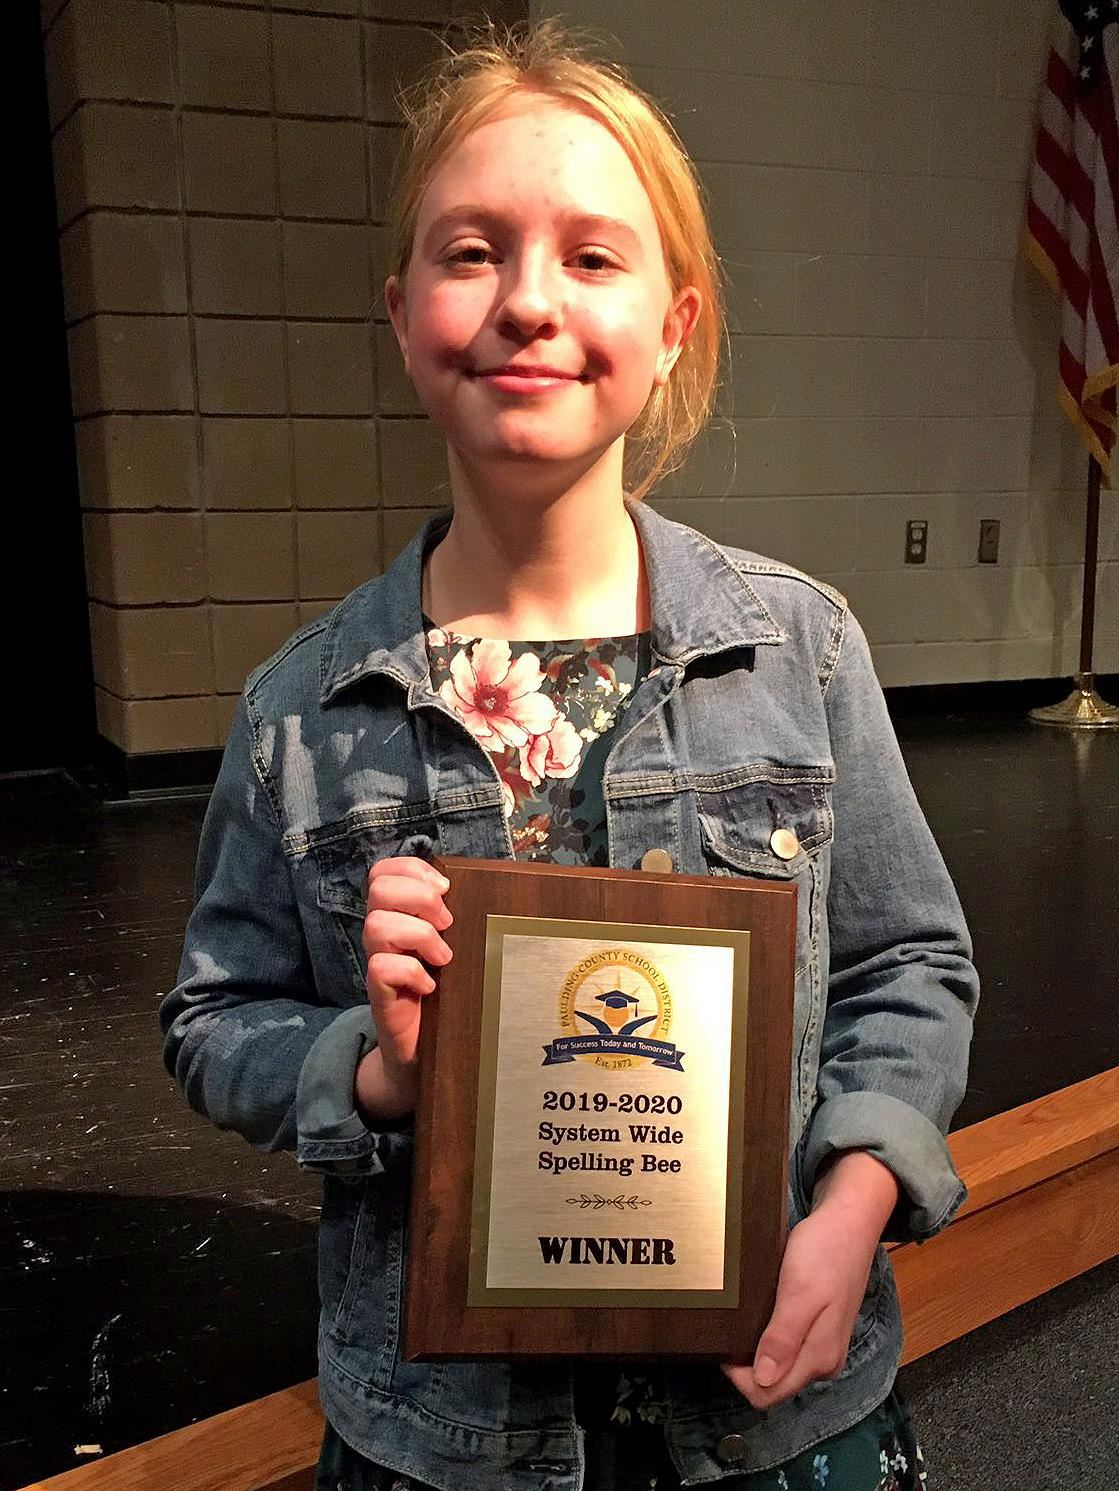 Kaitlyn Lydick Wins System Wide Spelling Bee!